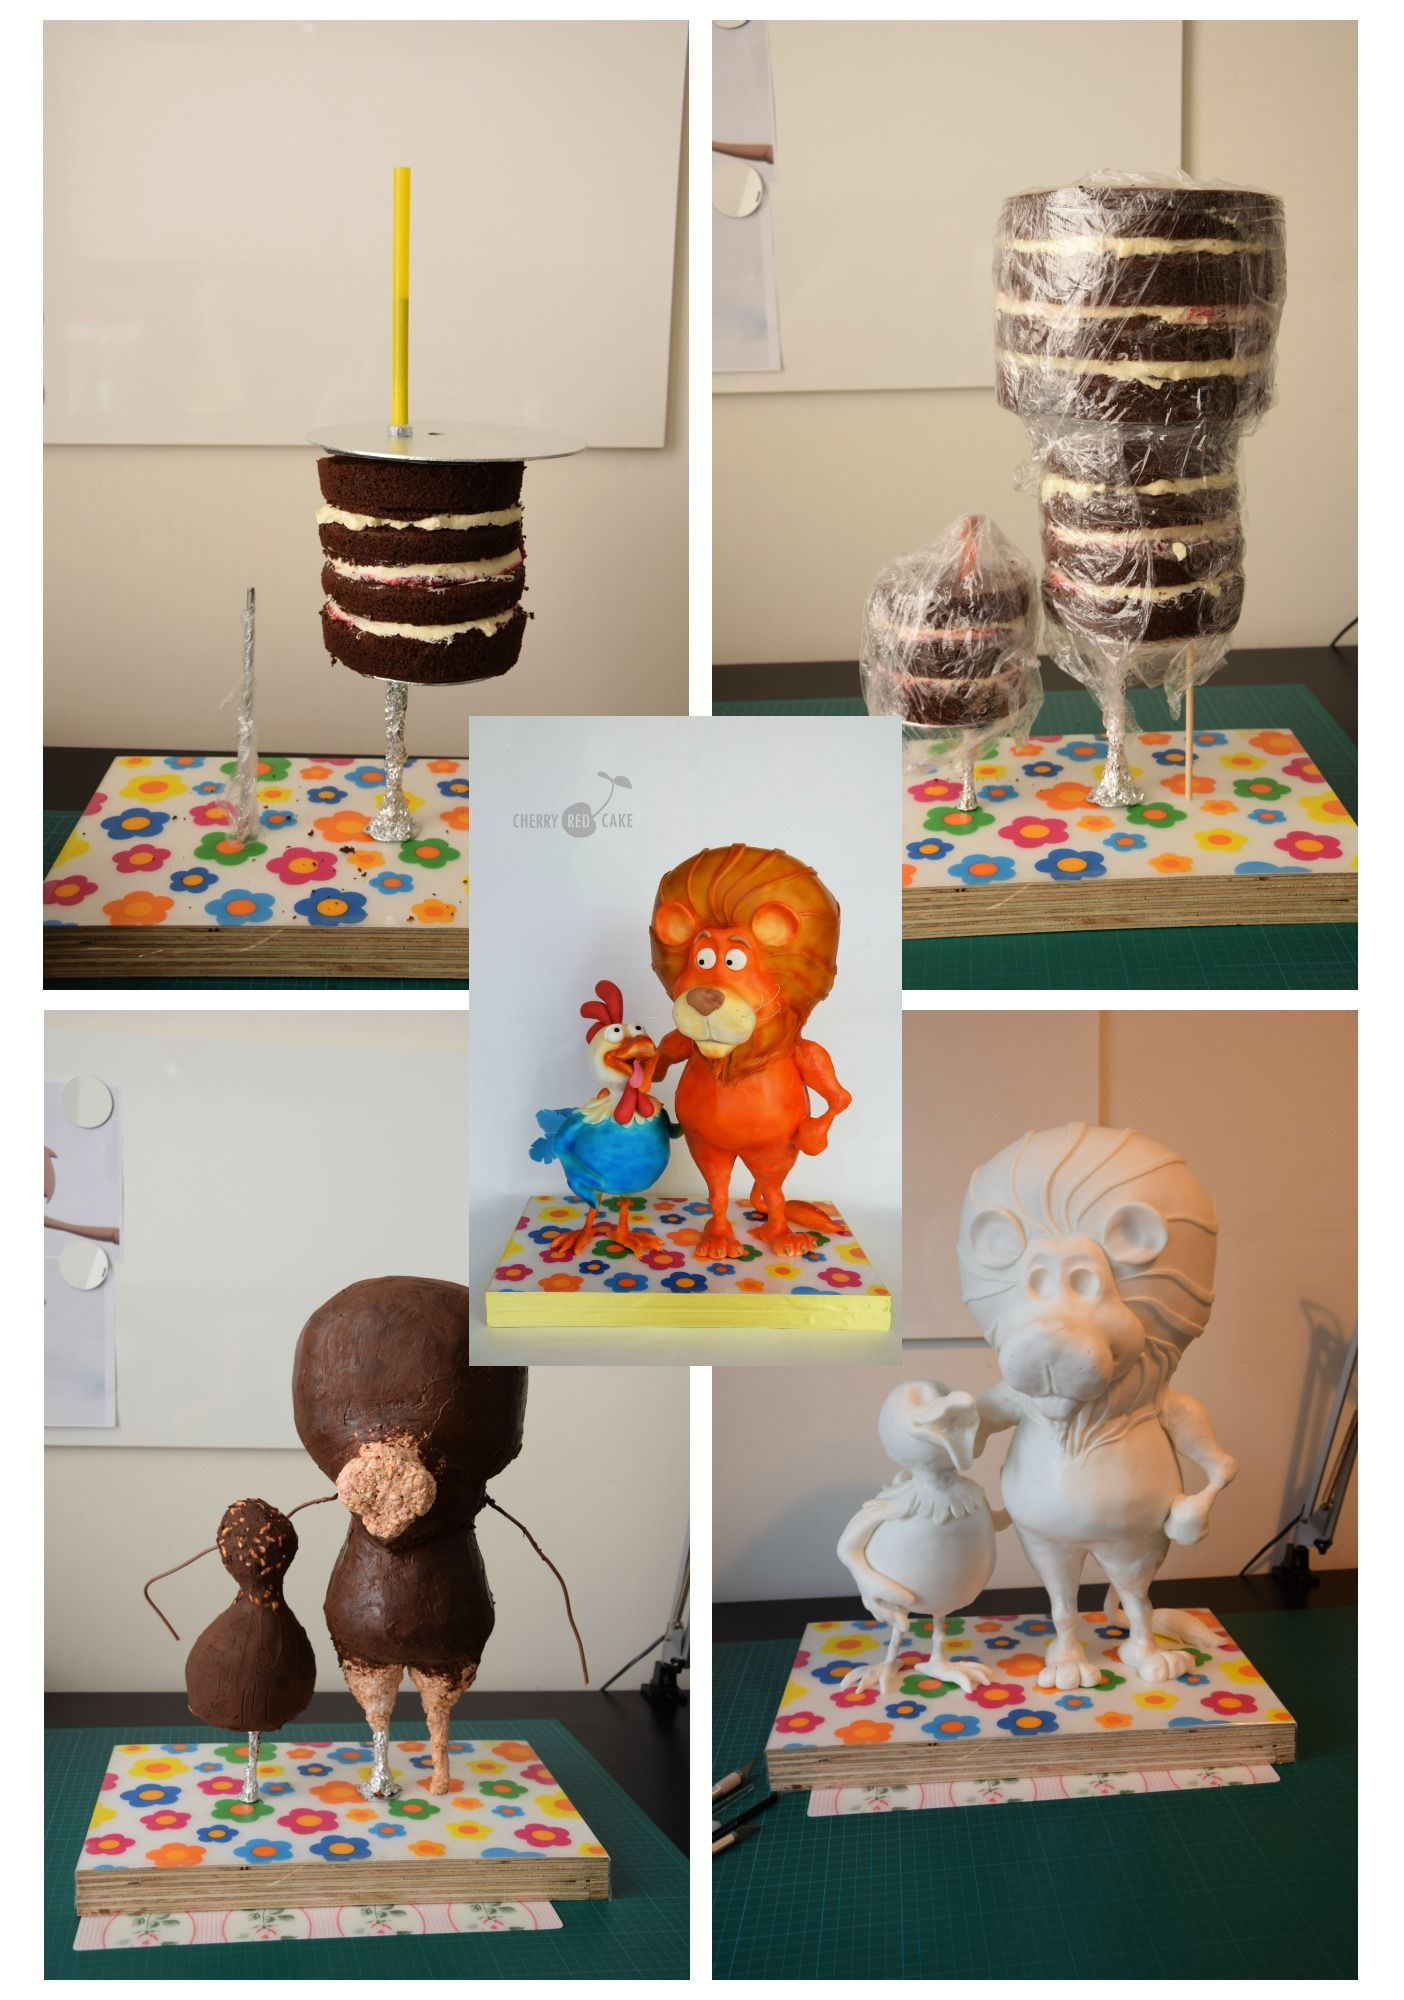 5 Tutorials For Defying Gravity: Work In Progress- How I've Made Lion & Rooster Cake